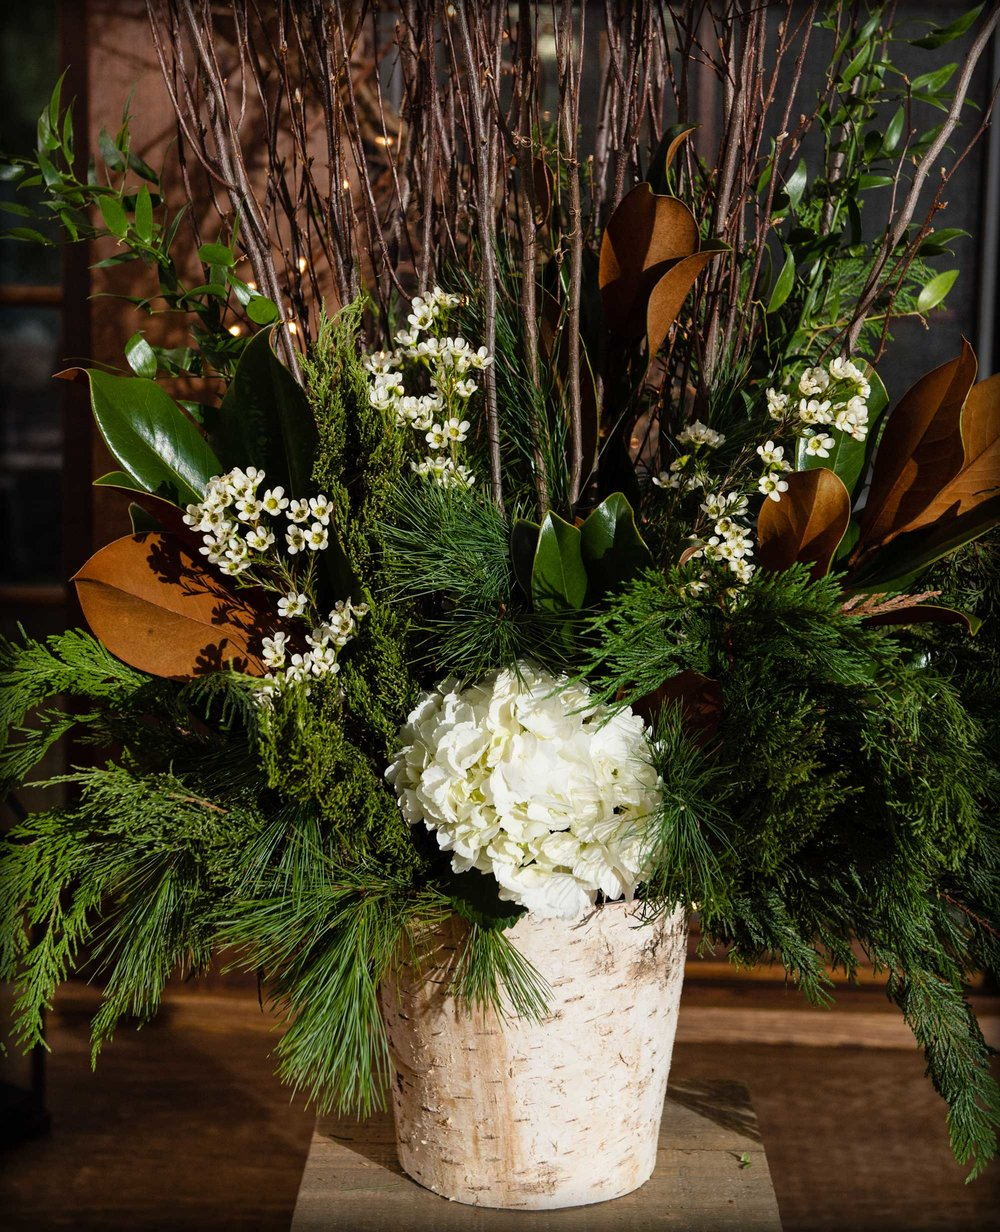 Tall Winter Ceremony Display with Branches : Heather Nicole Photography